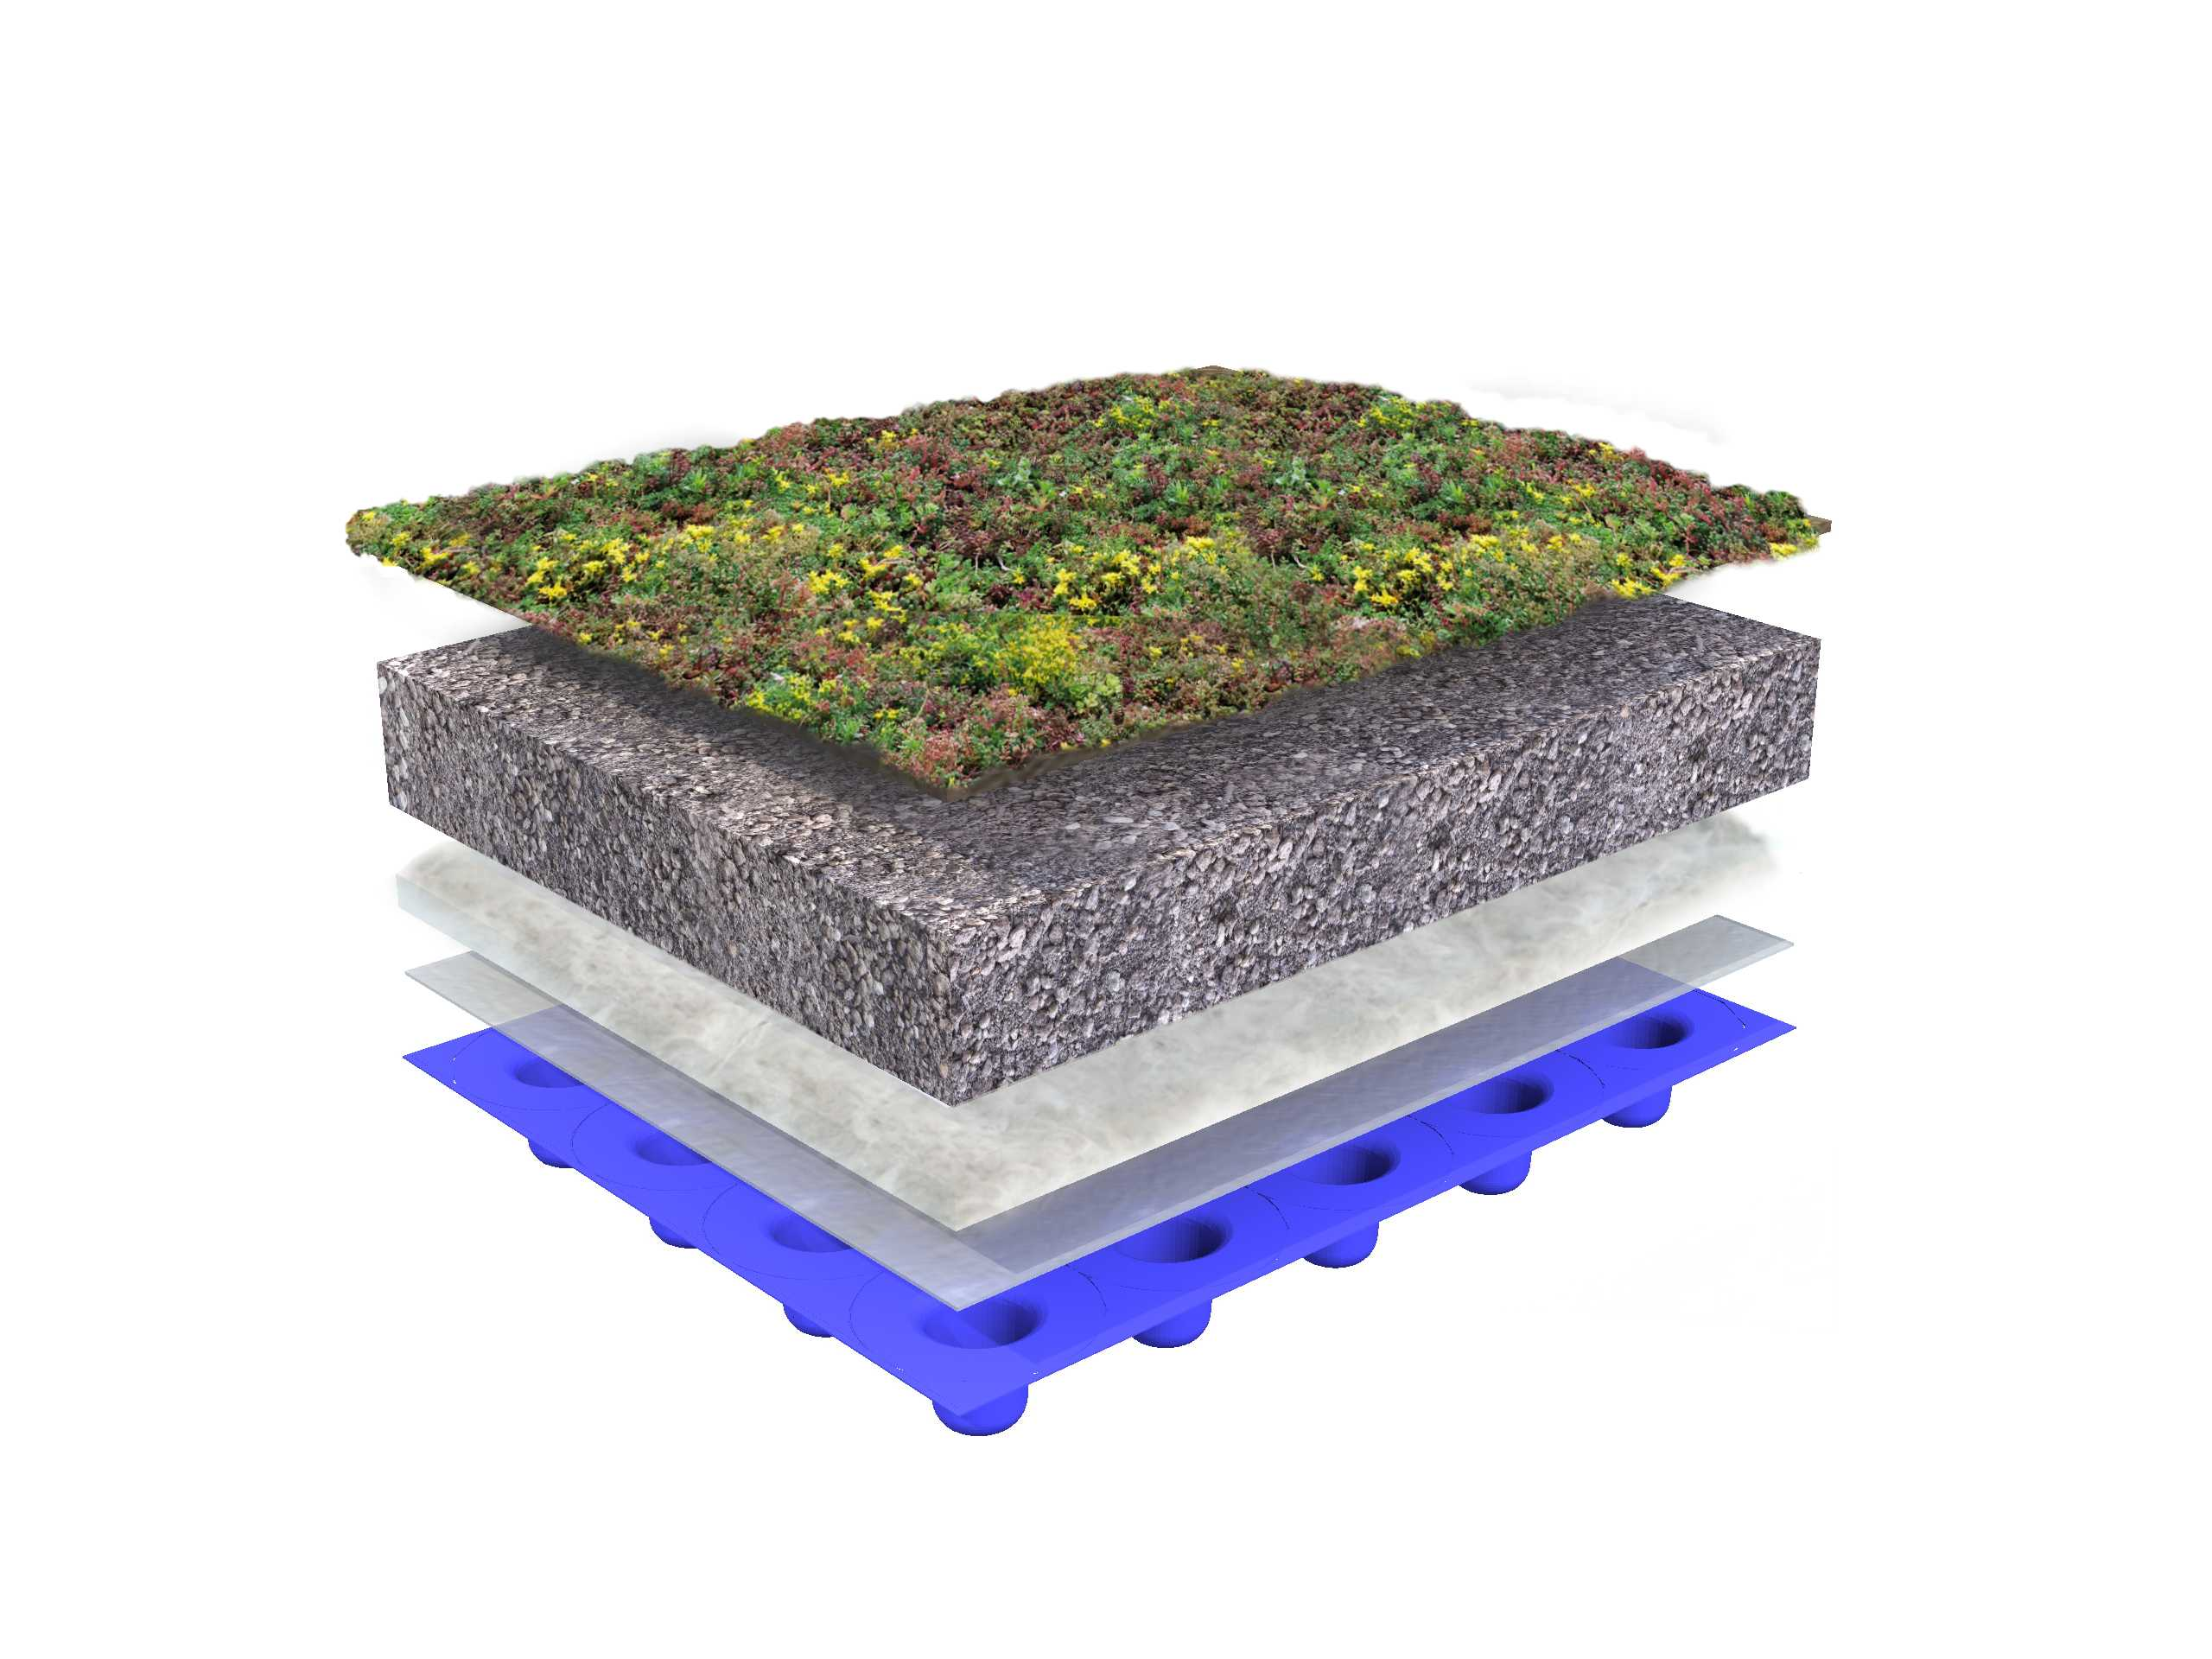 Green roof system structure – flat roof with Sedum